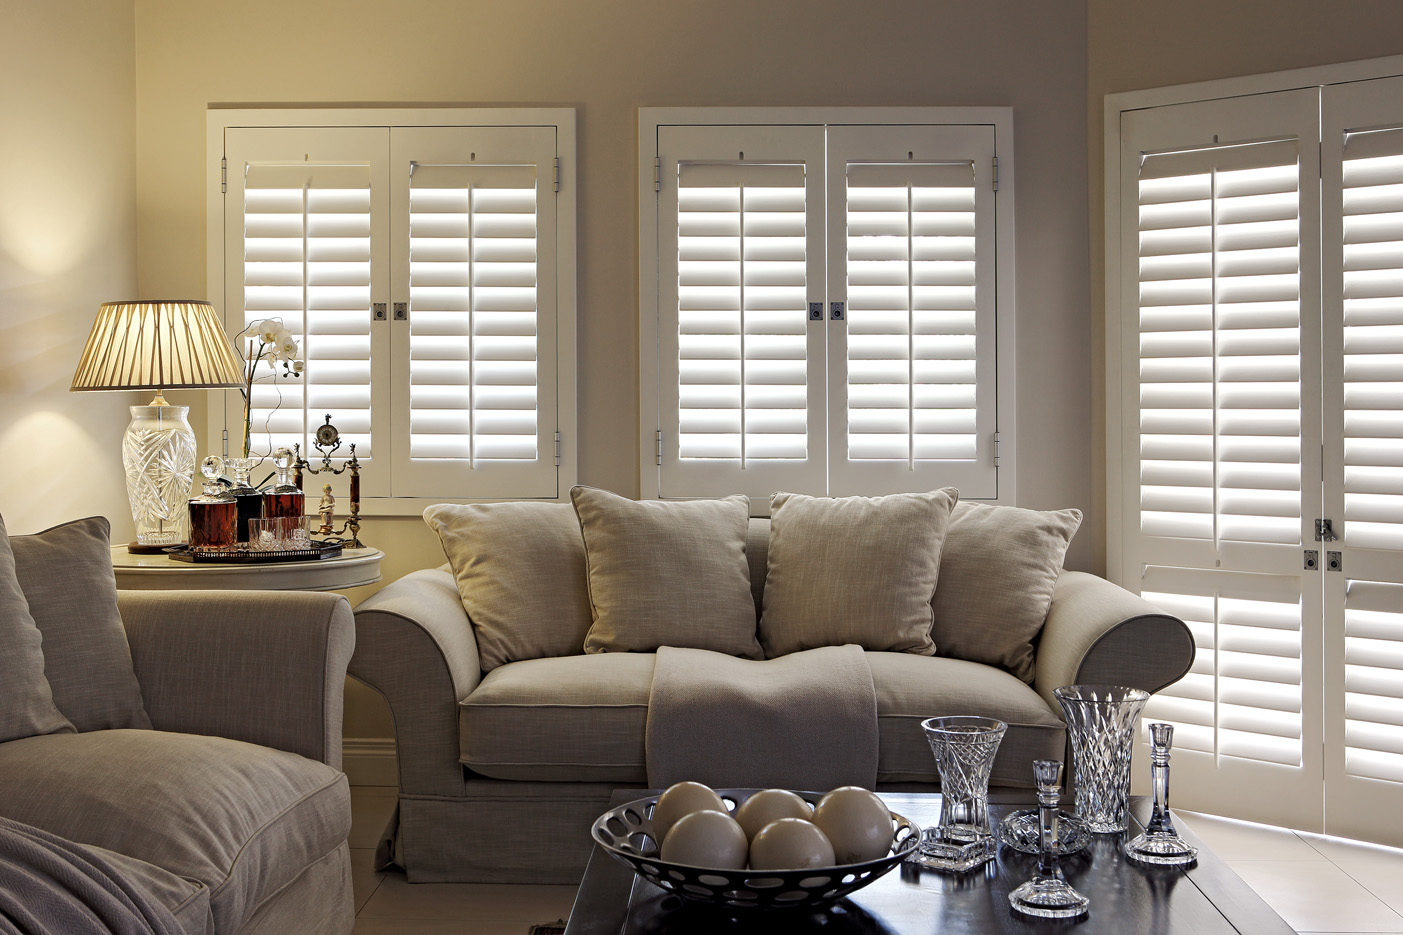 Shutting in the Warmth This Winter with Plantation Shutters®